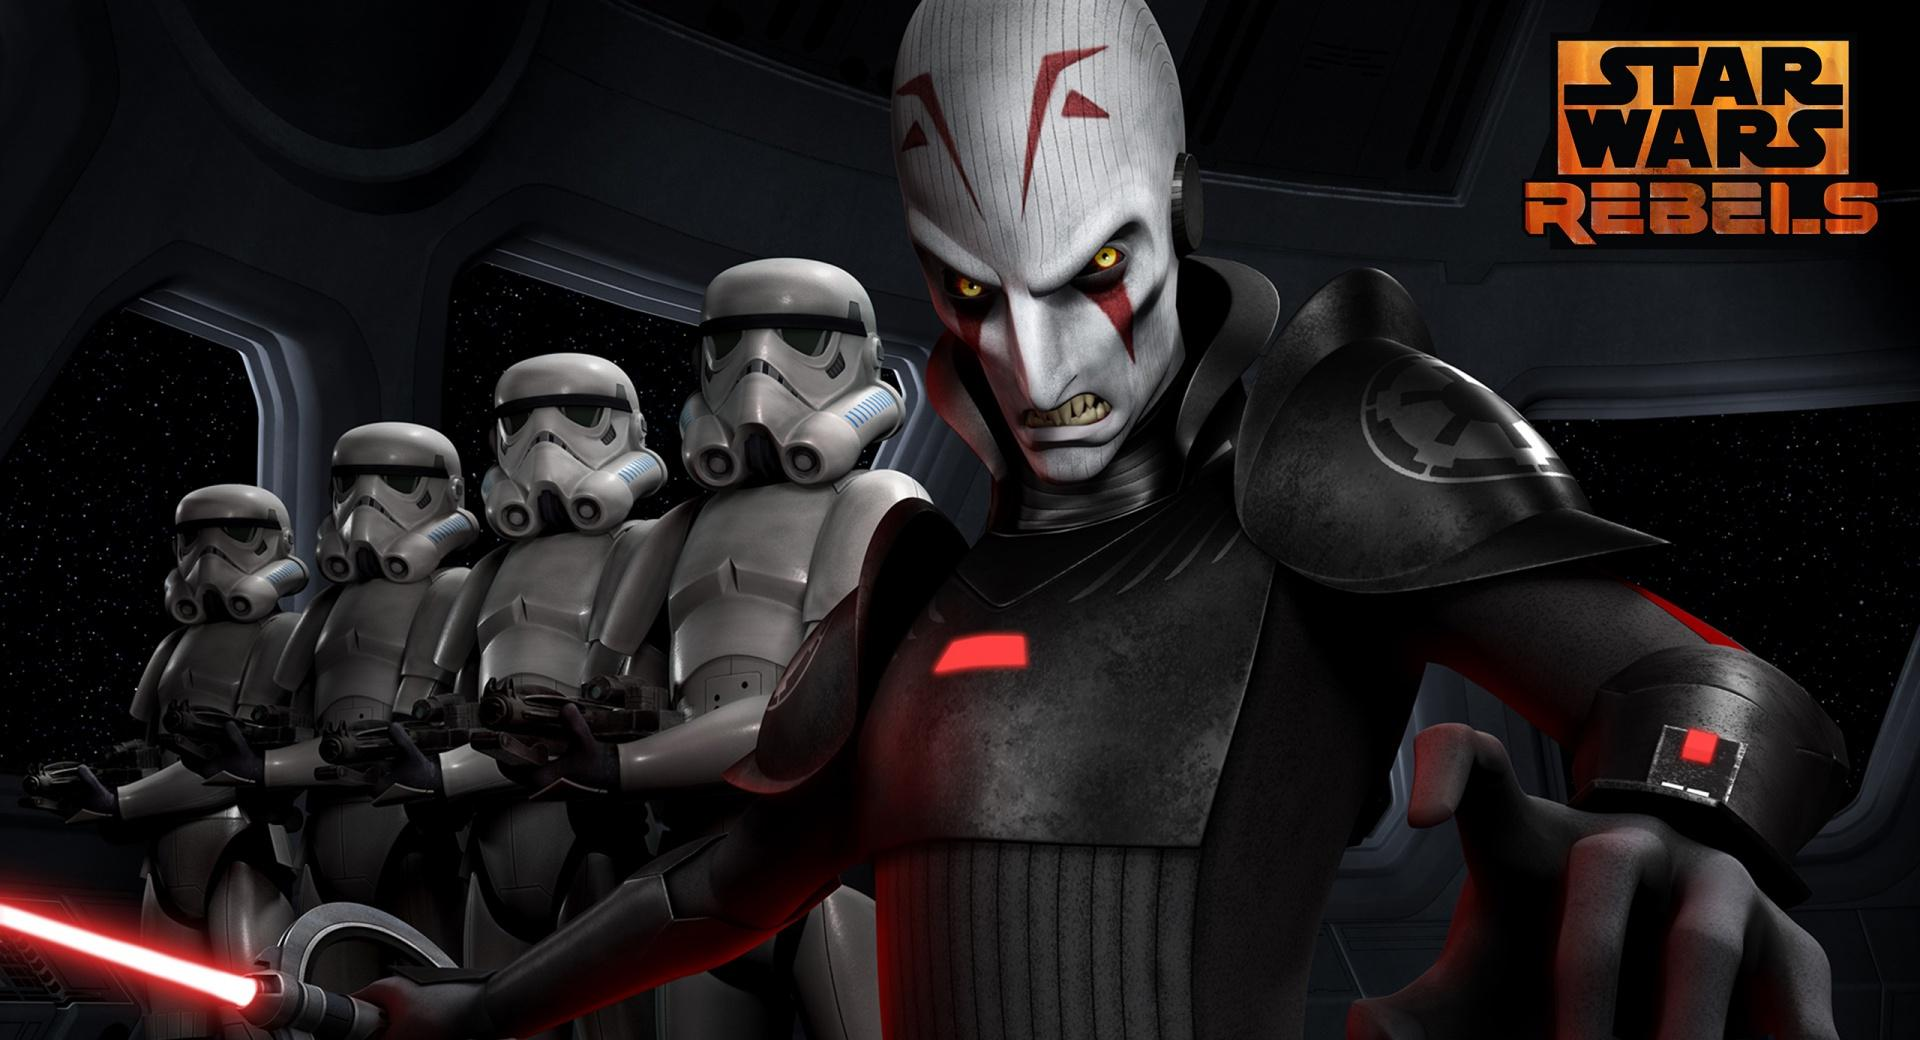 Star Wars Rebels Inquisitor wallpapers HD quality